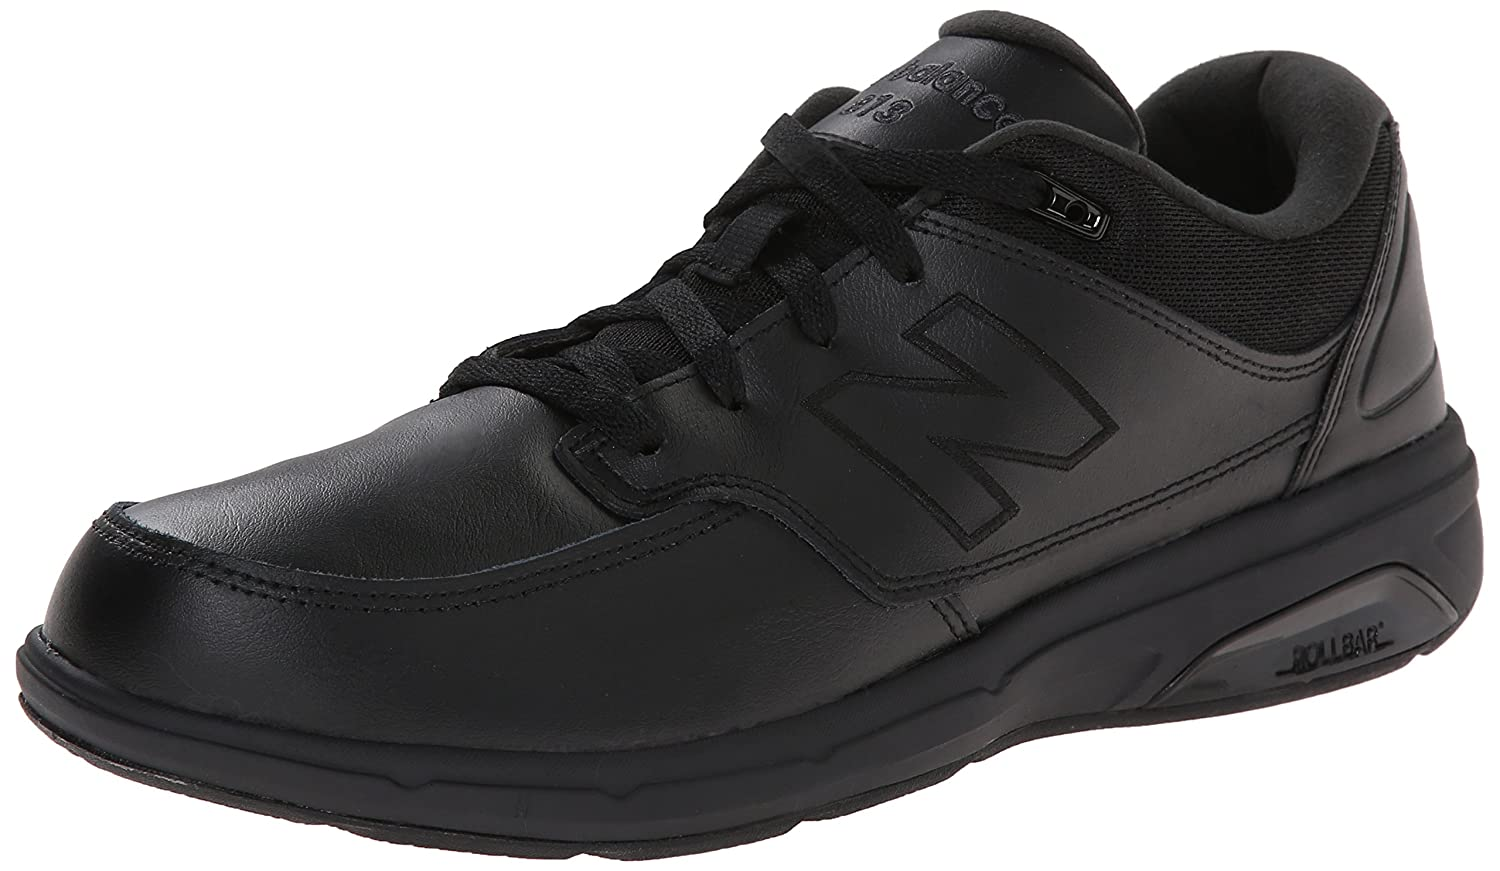 New Balance Men's Mw813 New Balance Men' s Mw813 New Balance Athletic Shoe Inc. MW813BK